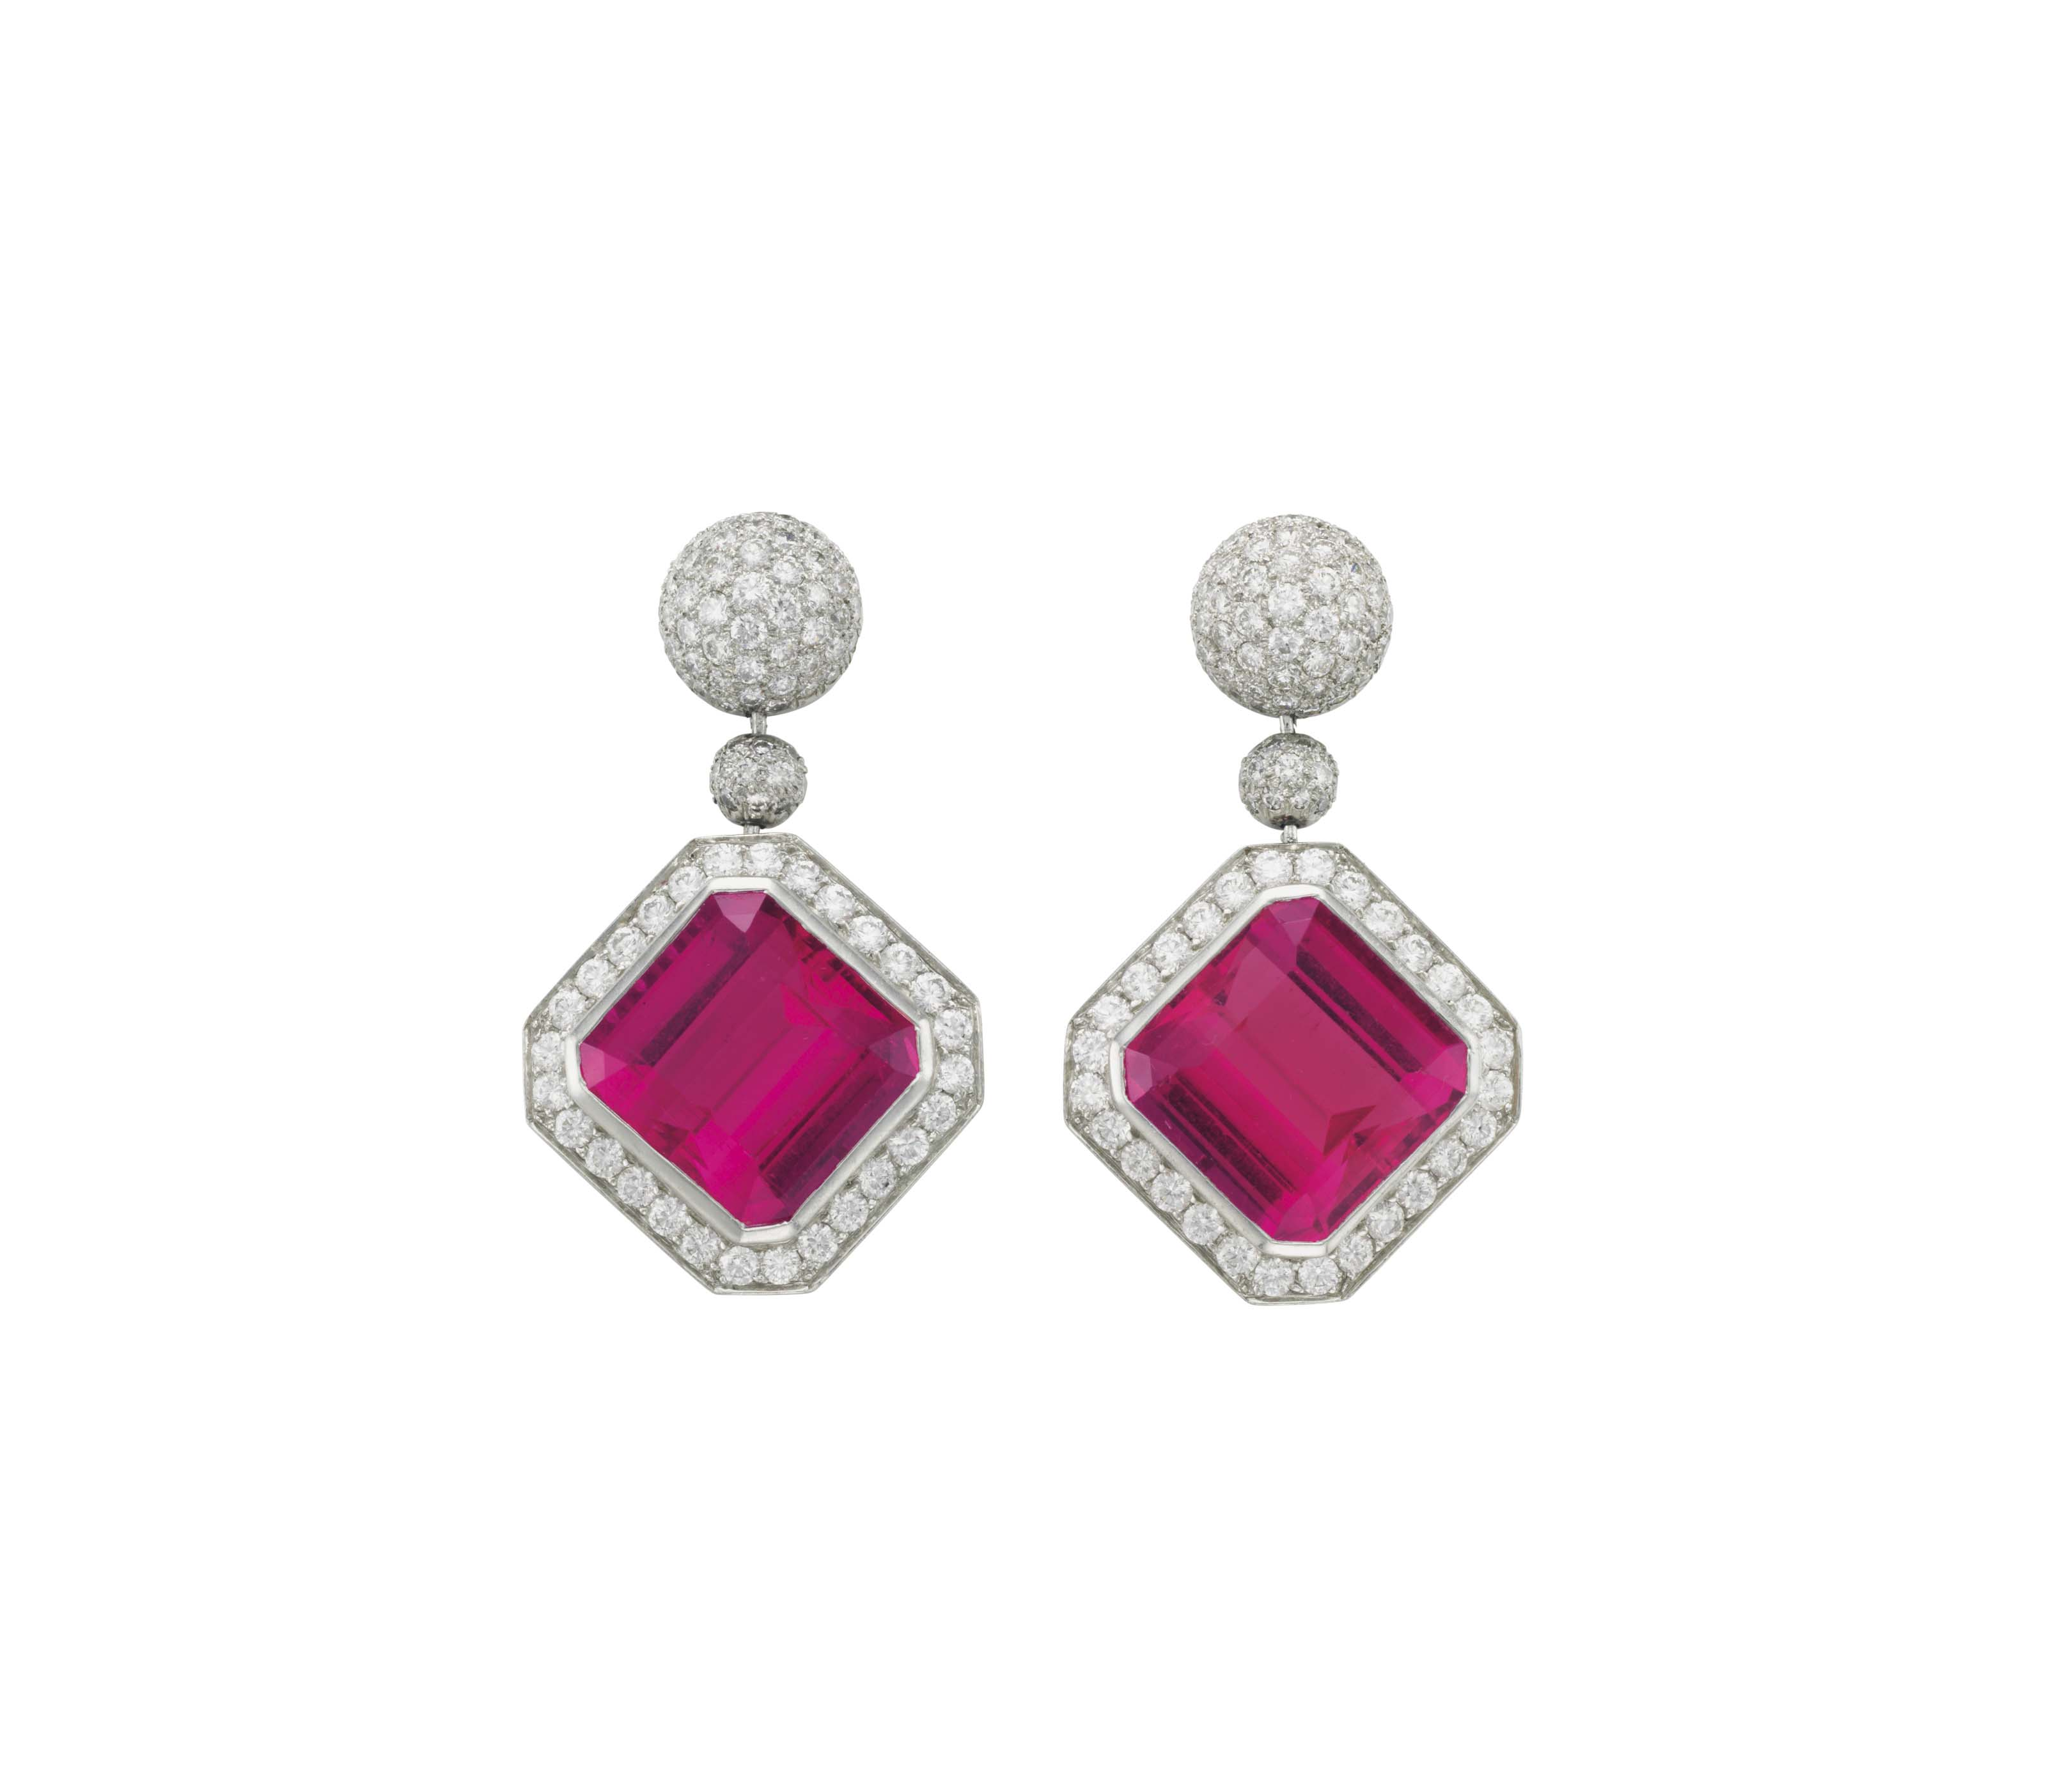 A PAIR OF RUBELLITE TOURMALINE AND DIAMOND EAR PENDANTS, BY PALOMA PICASSO, TIFFANY & CO.